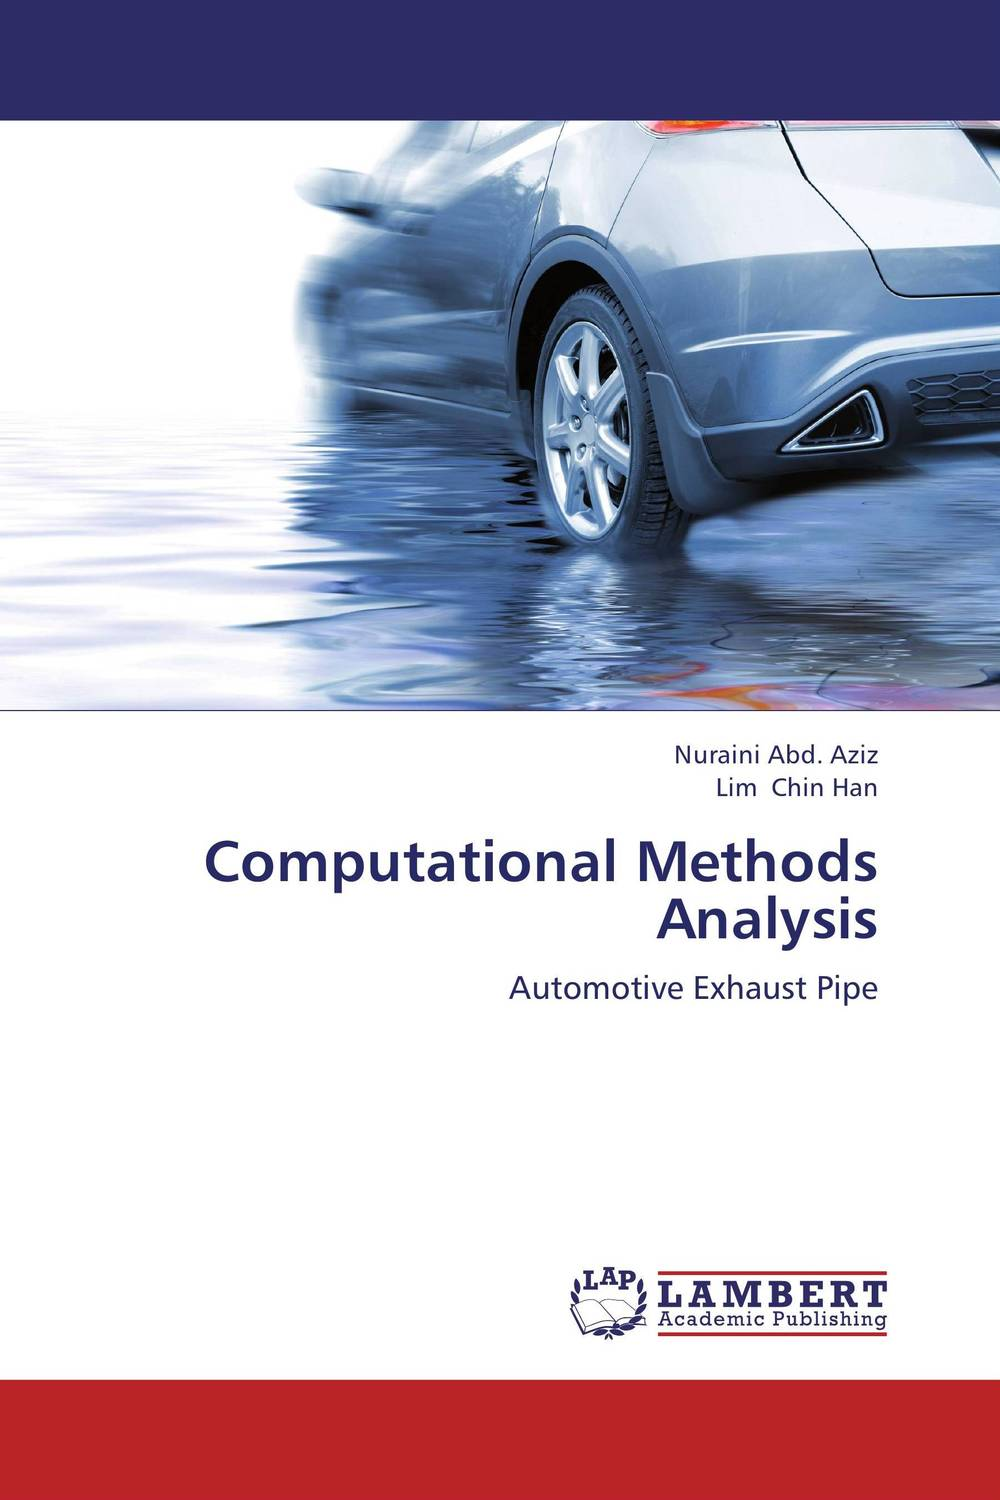 Computational Methods Analysis belousov a security features of banknotes and other documents methods of authentication manual денежные билеты бланки ценных бумаг и документов